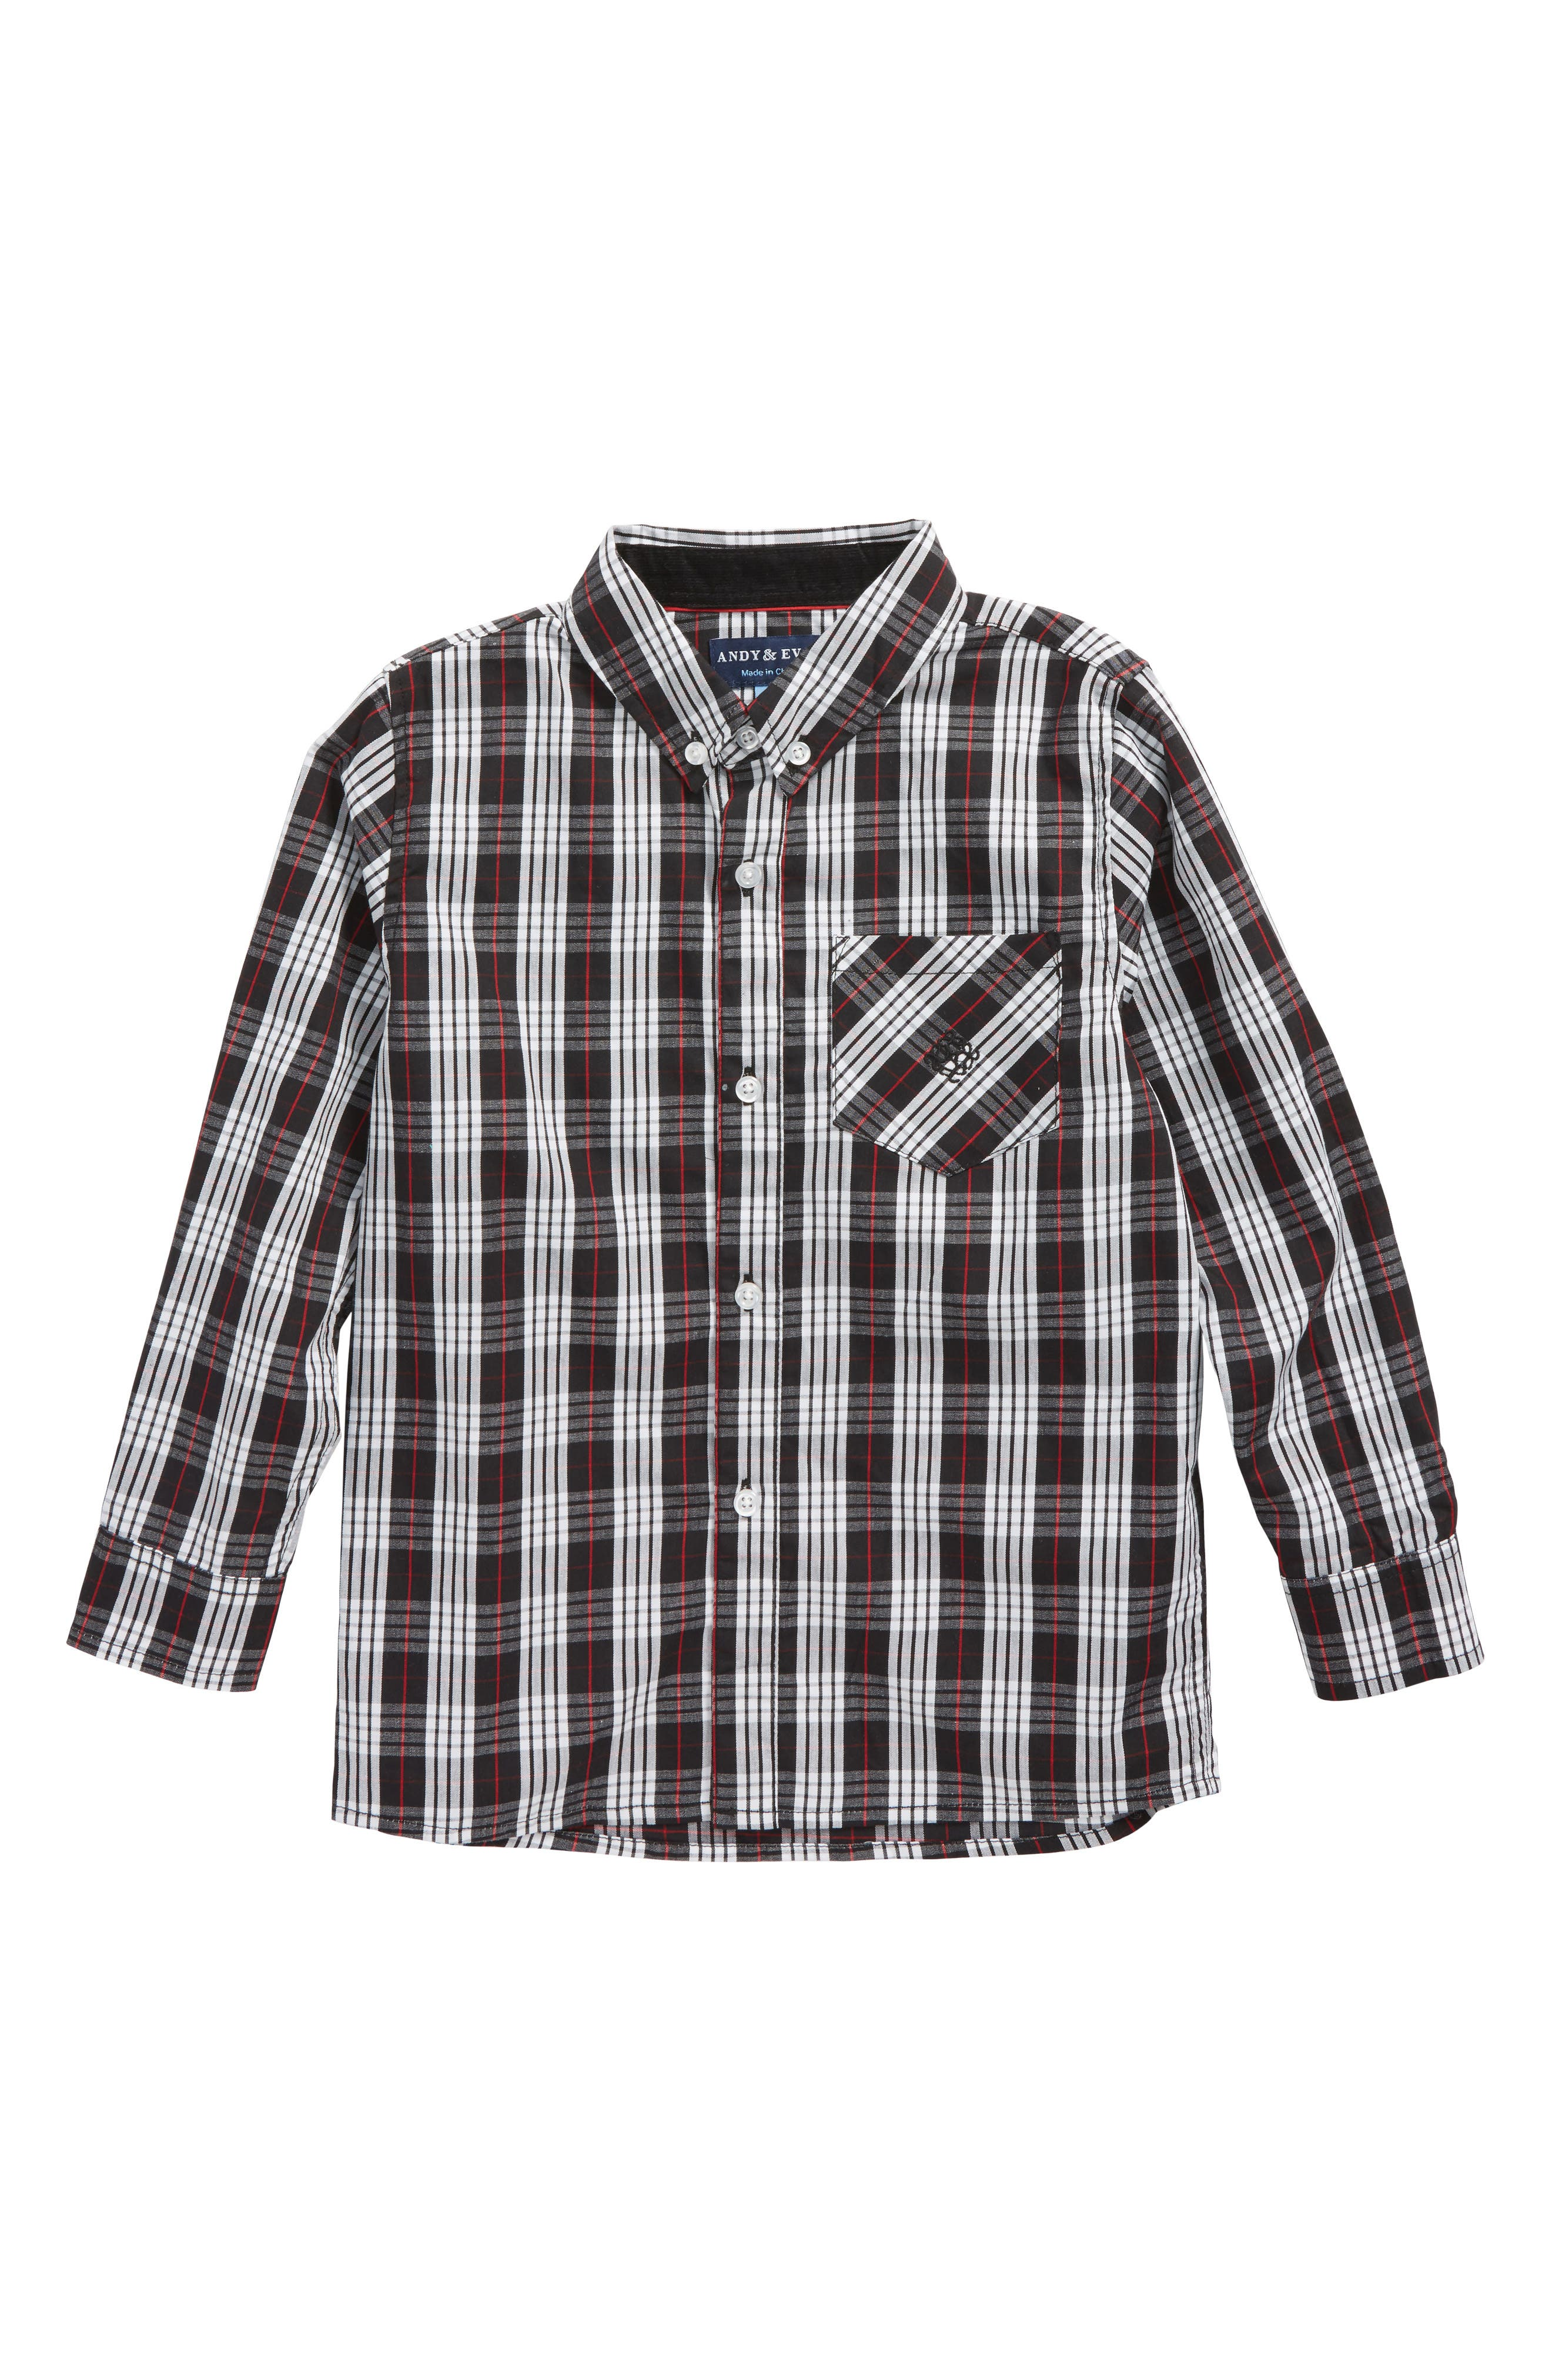 Plaid Woven Shirt,                         Main,                         color, 002